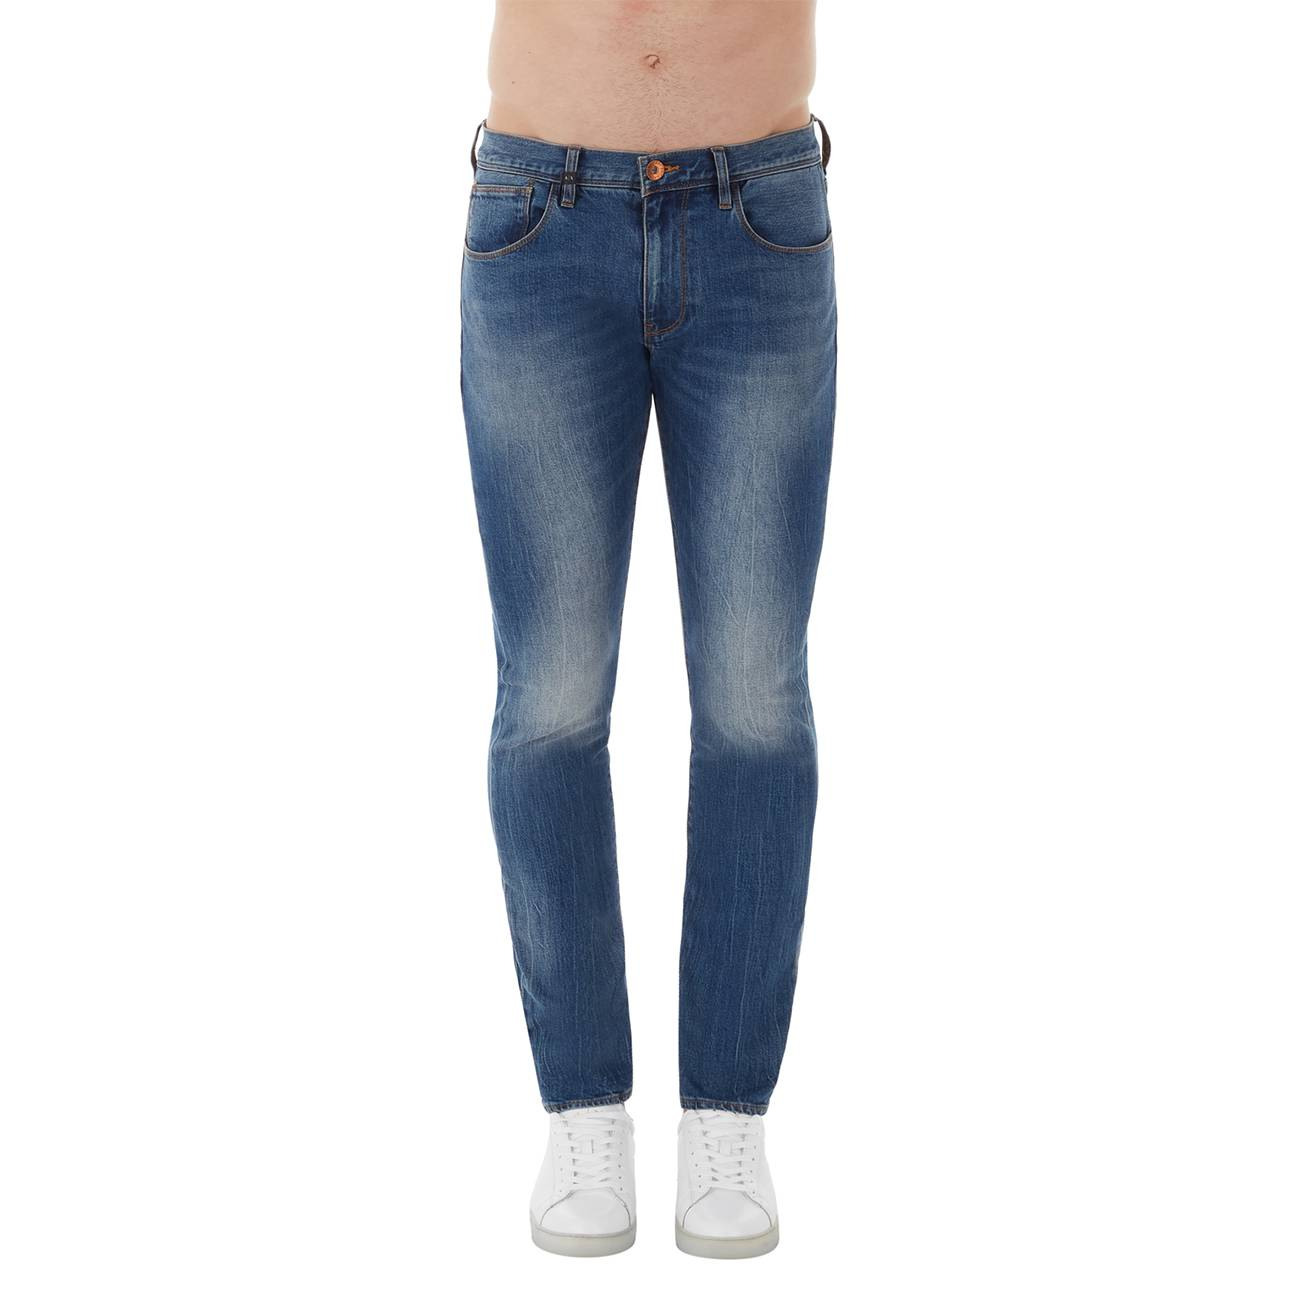 Jeans 31r